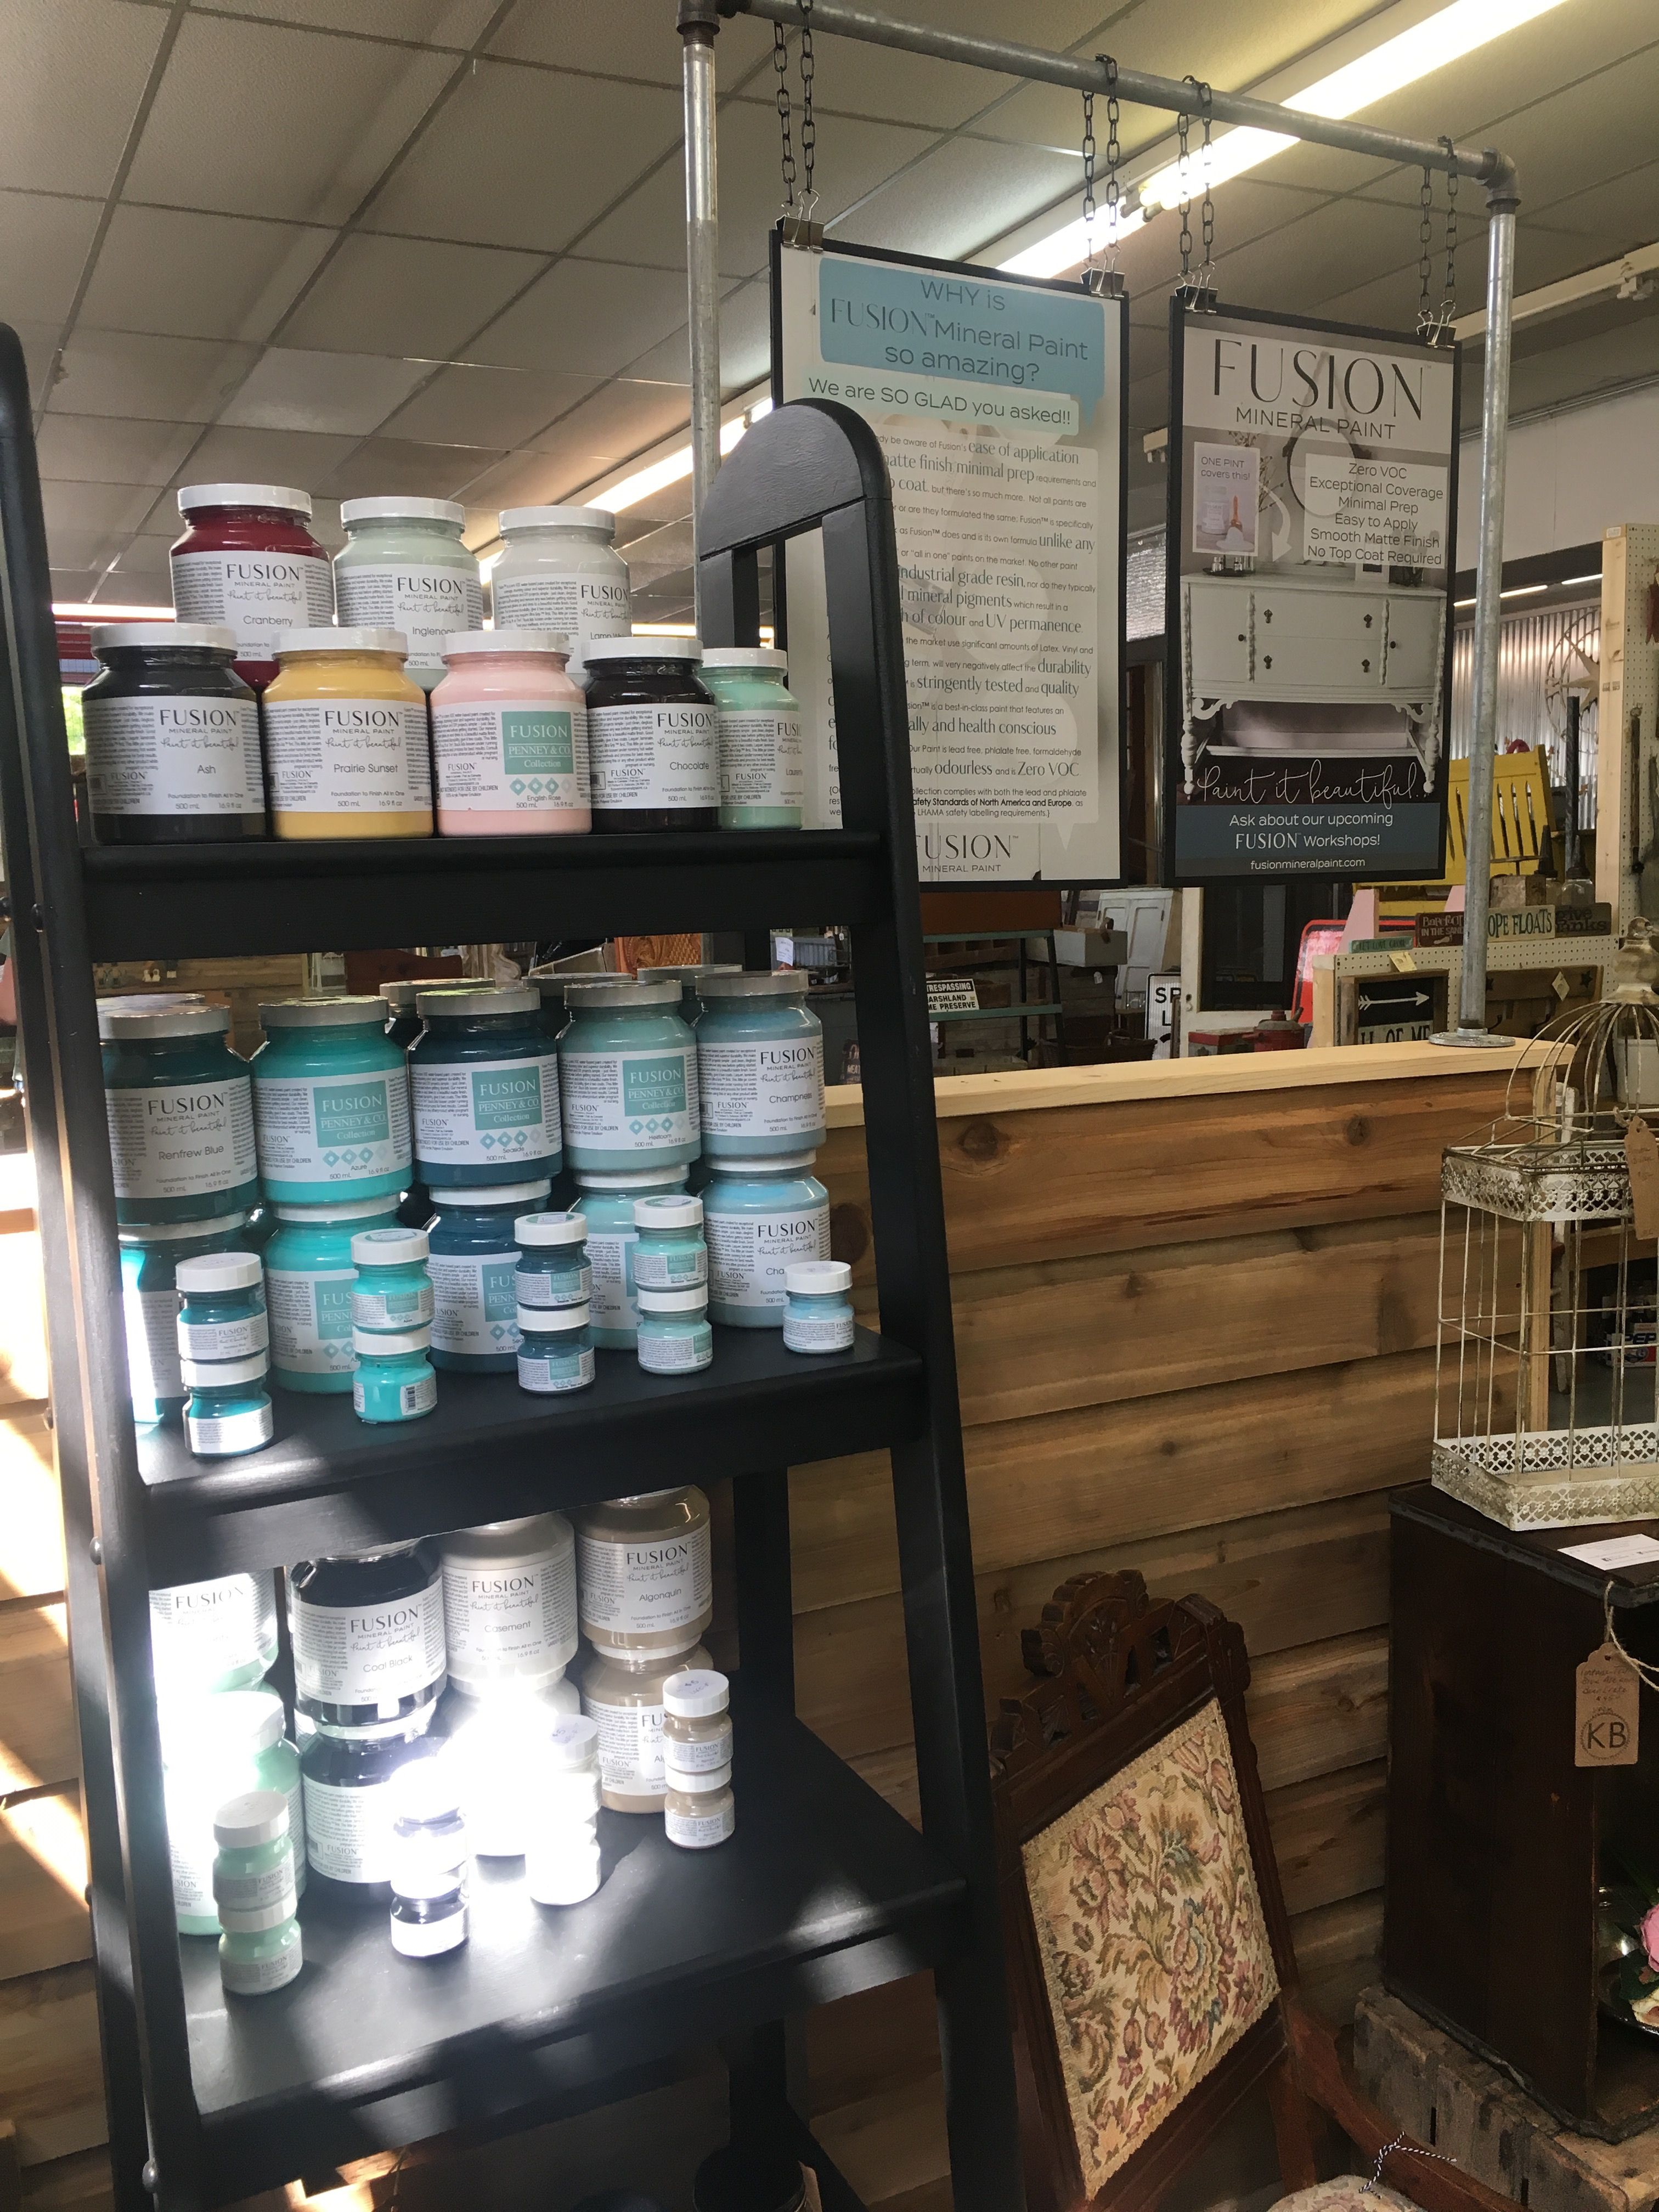 Fusion Mineral Paint Available At The Upcycle Home Decor Booth